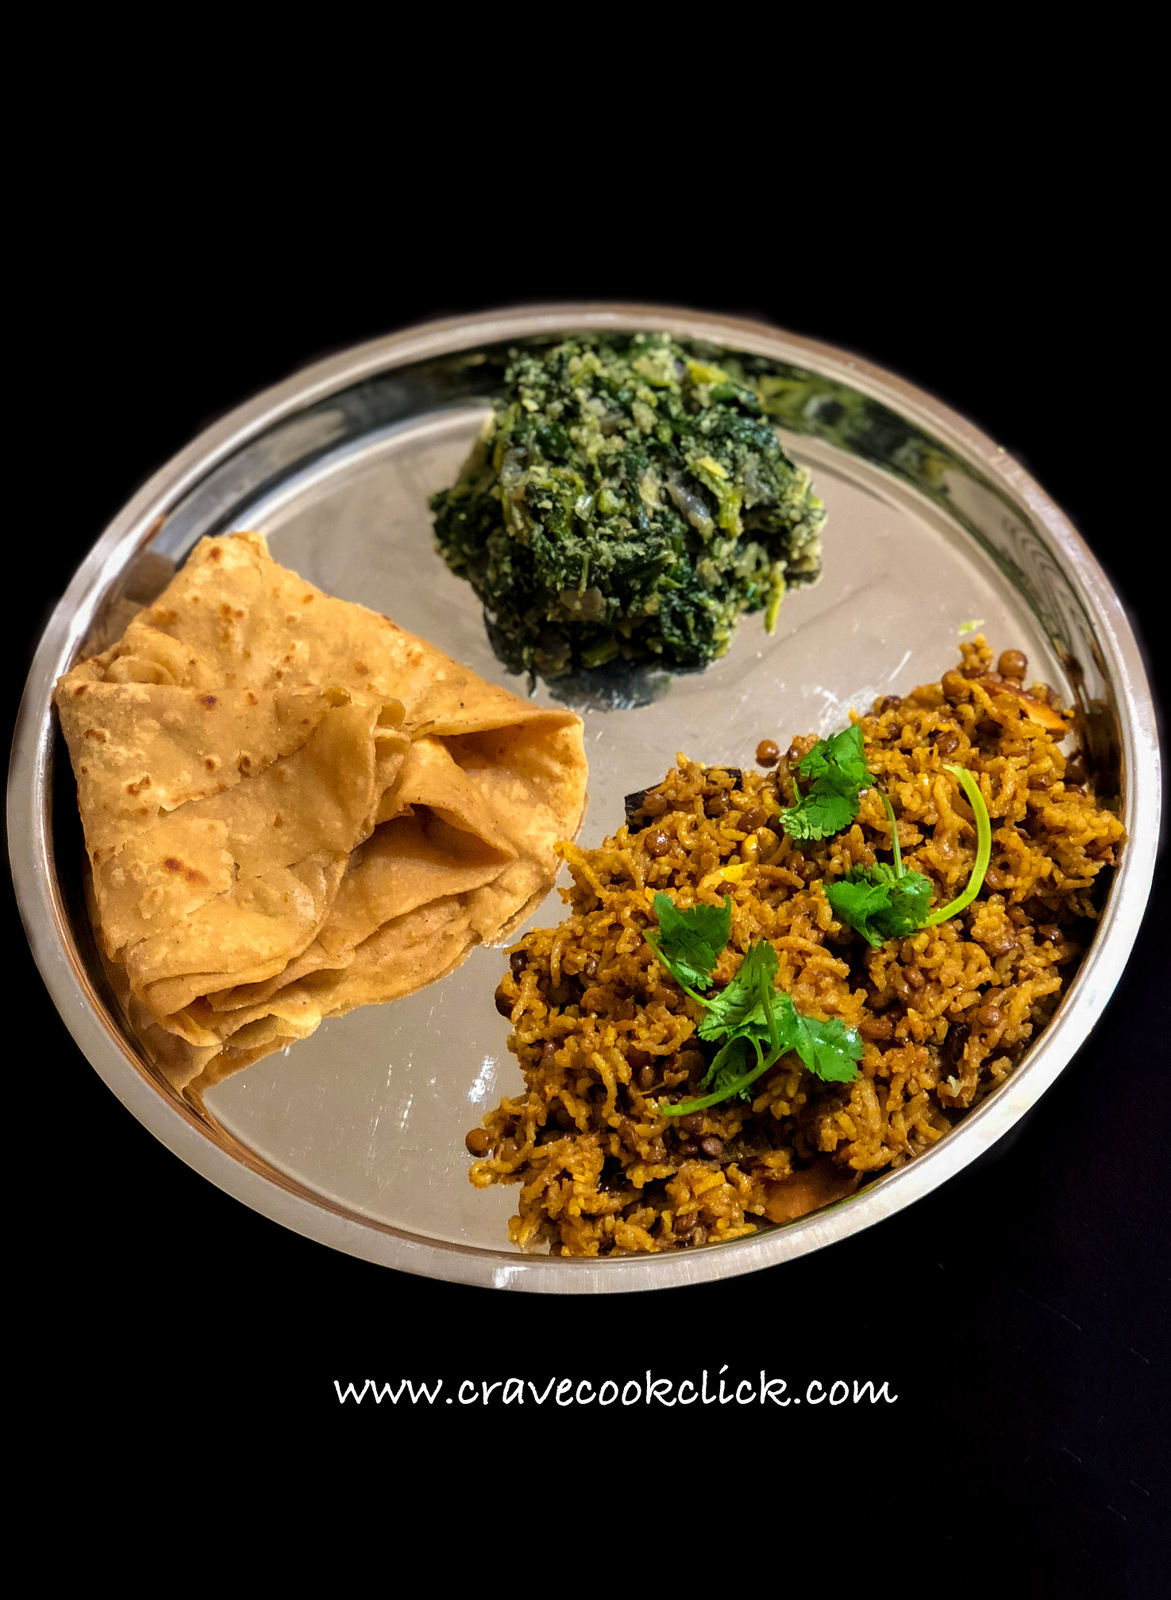 Postpartum Indian Diet, indian recipes for breastfeeding, recipes to increase milk supply, baby nutrition, breastfeeding diet and nutrition